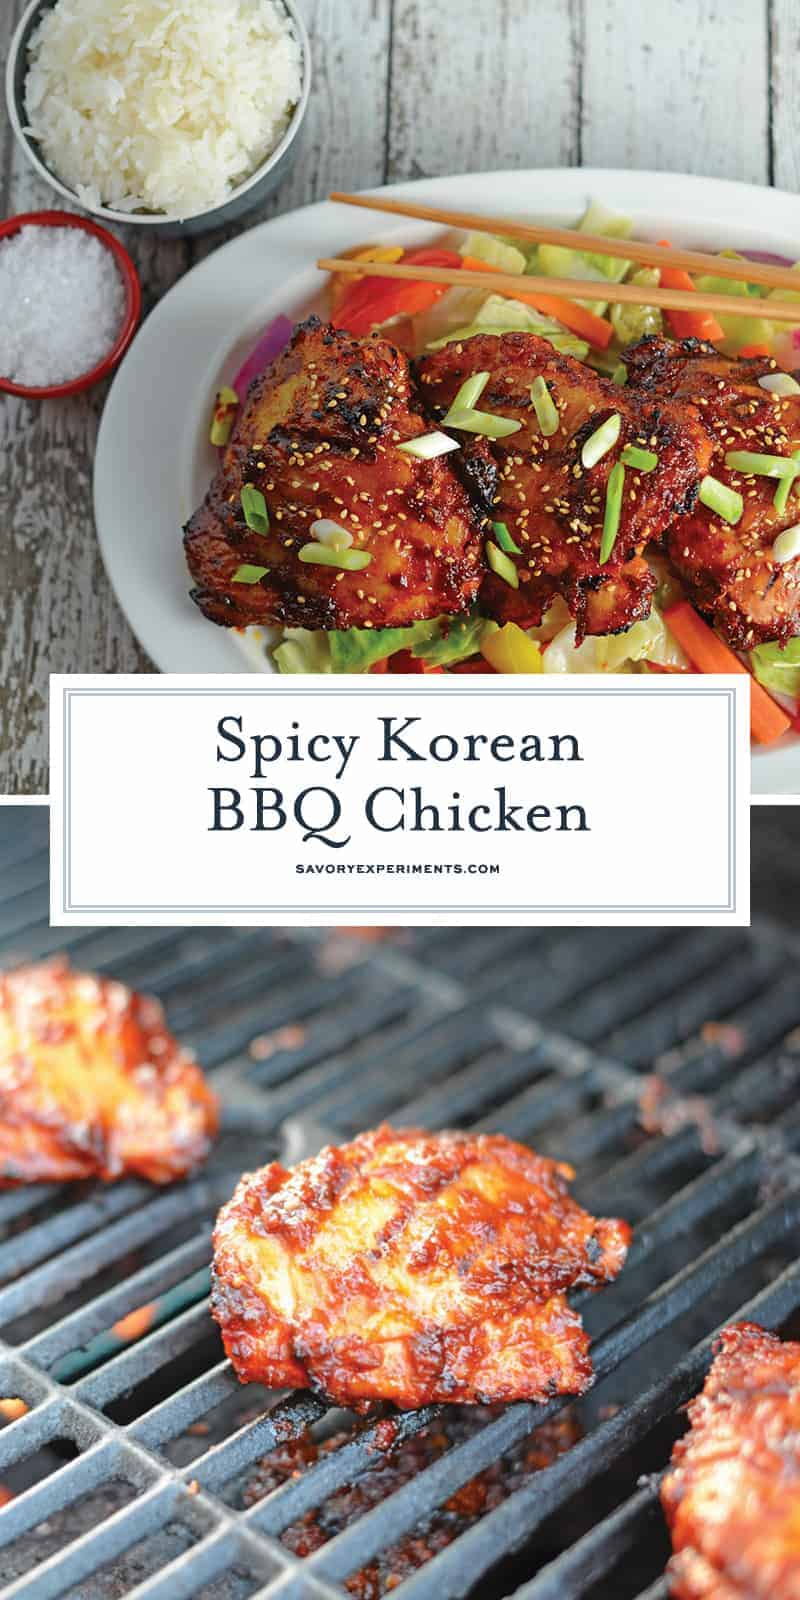 Spicy Korean BBQ Chicken is a spicy chicken marinade using chile garlic sauce, dark soy sauce and apple to balance the sweet. Use on any type of chicken and grill to perfection. #grilledchicken #koreanchicken #bbqchicken www.savoryexperiments.com